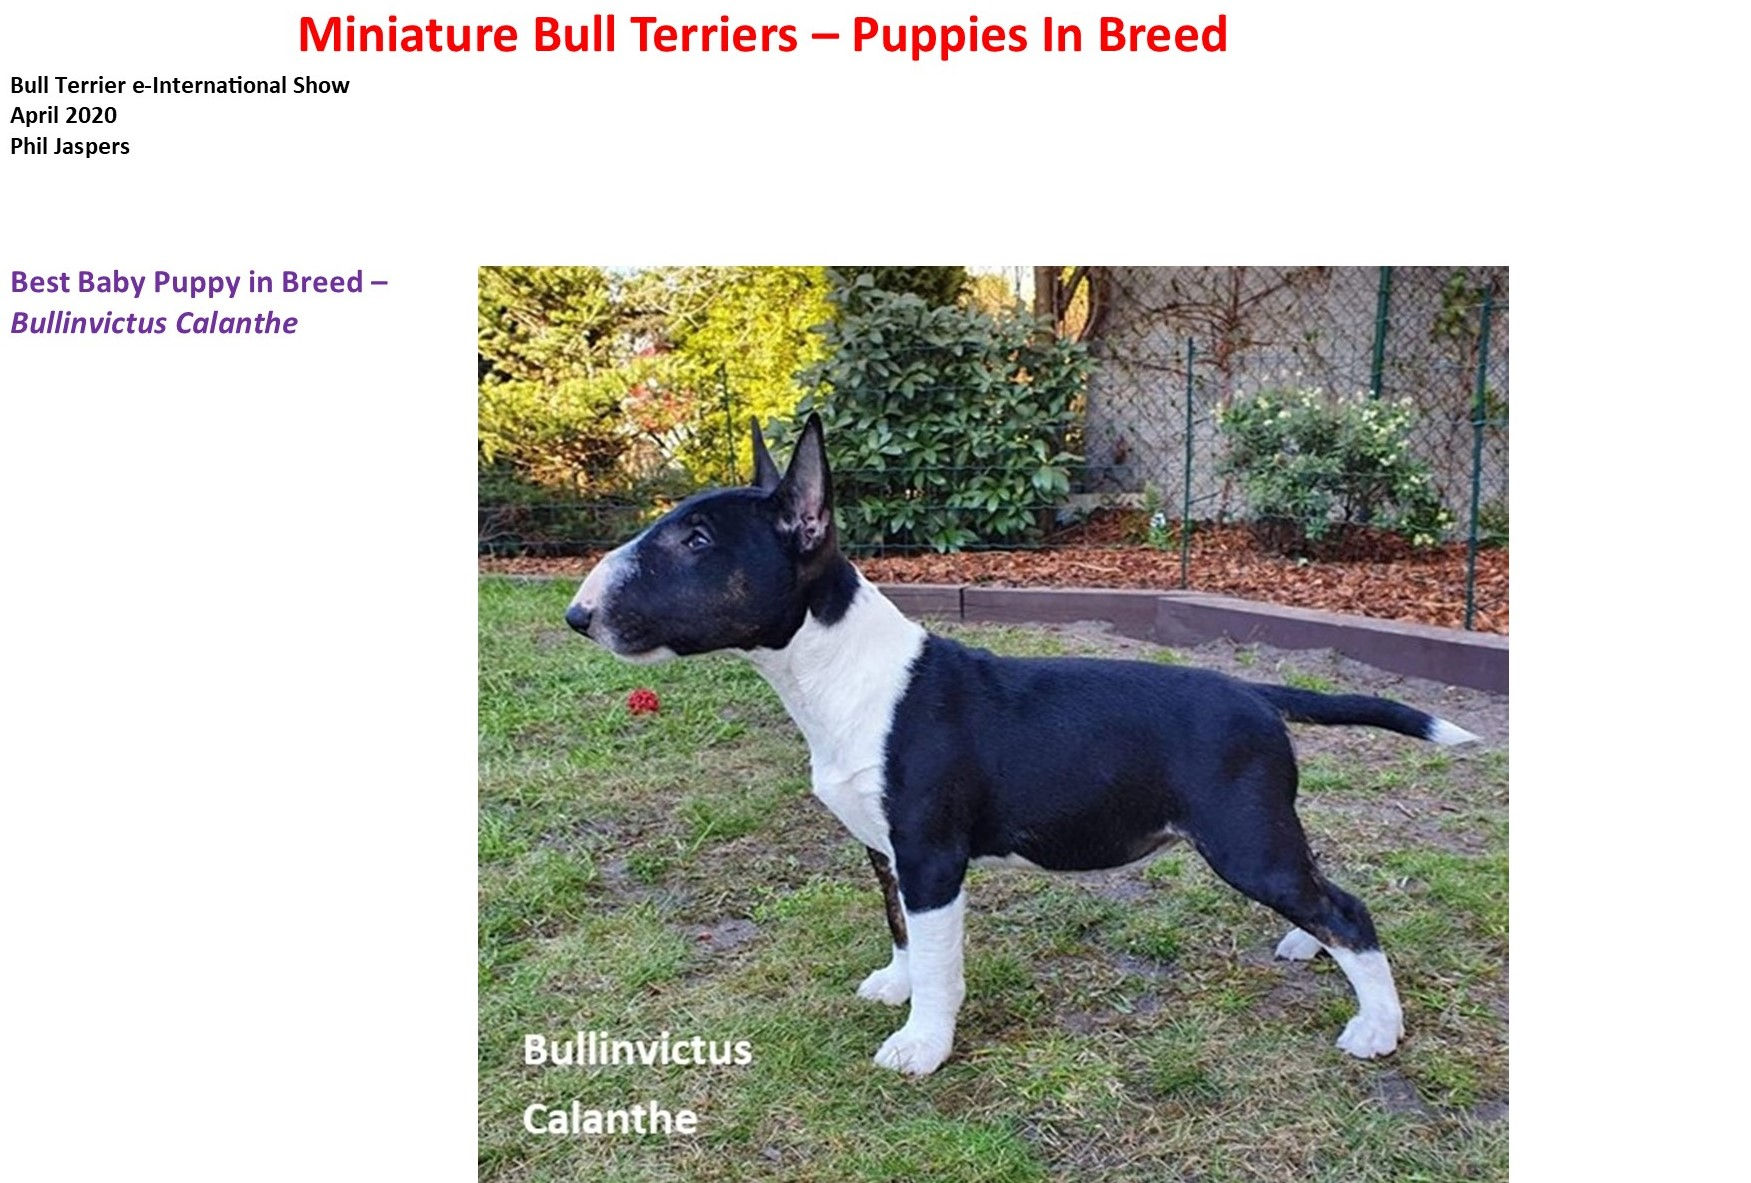 MBT Puppies In Breed 1